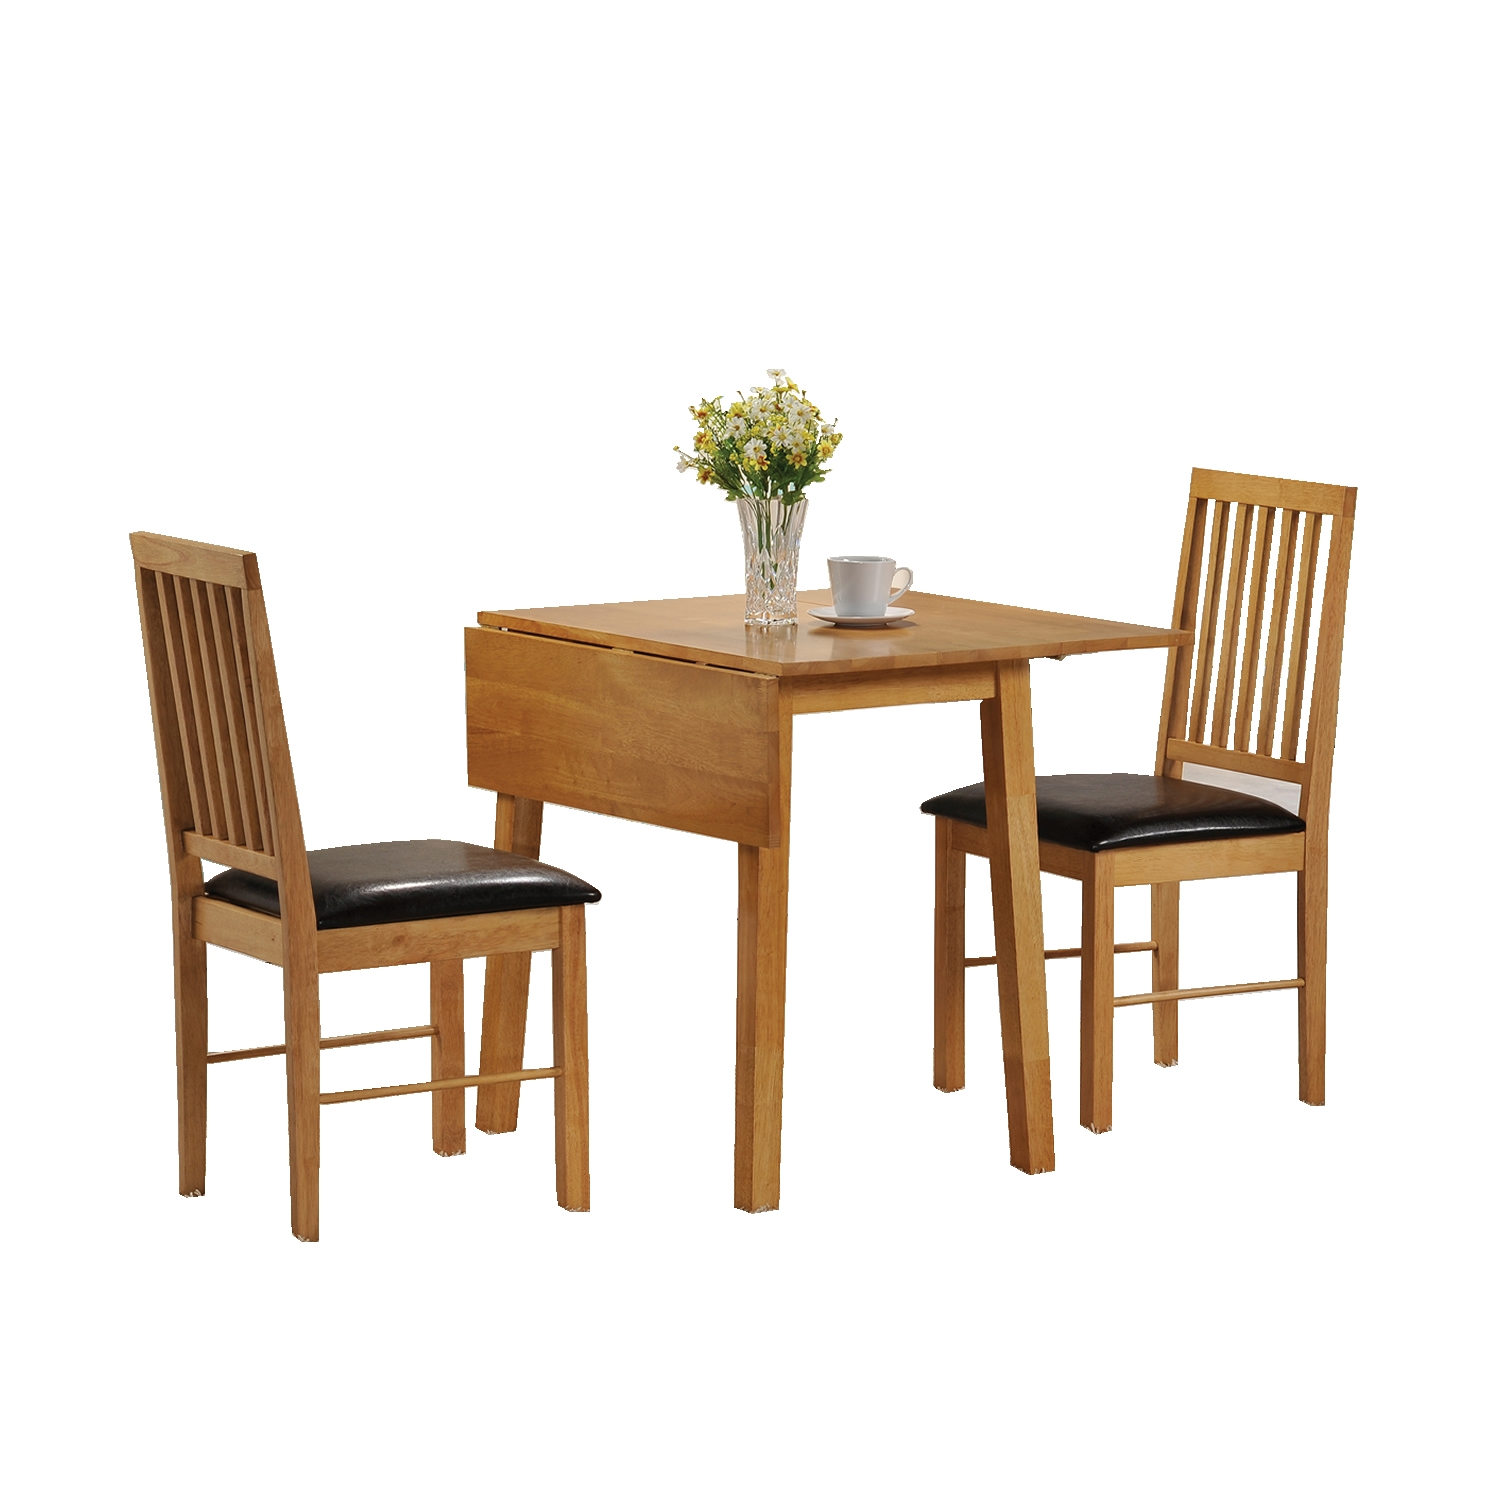 dining table and 2 chairs set 2 seater drop leaf set small dining